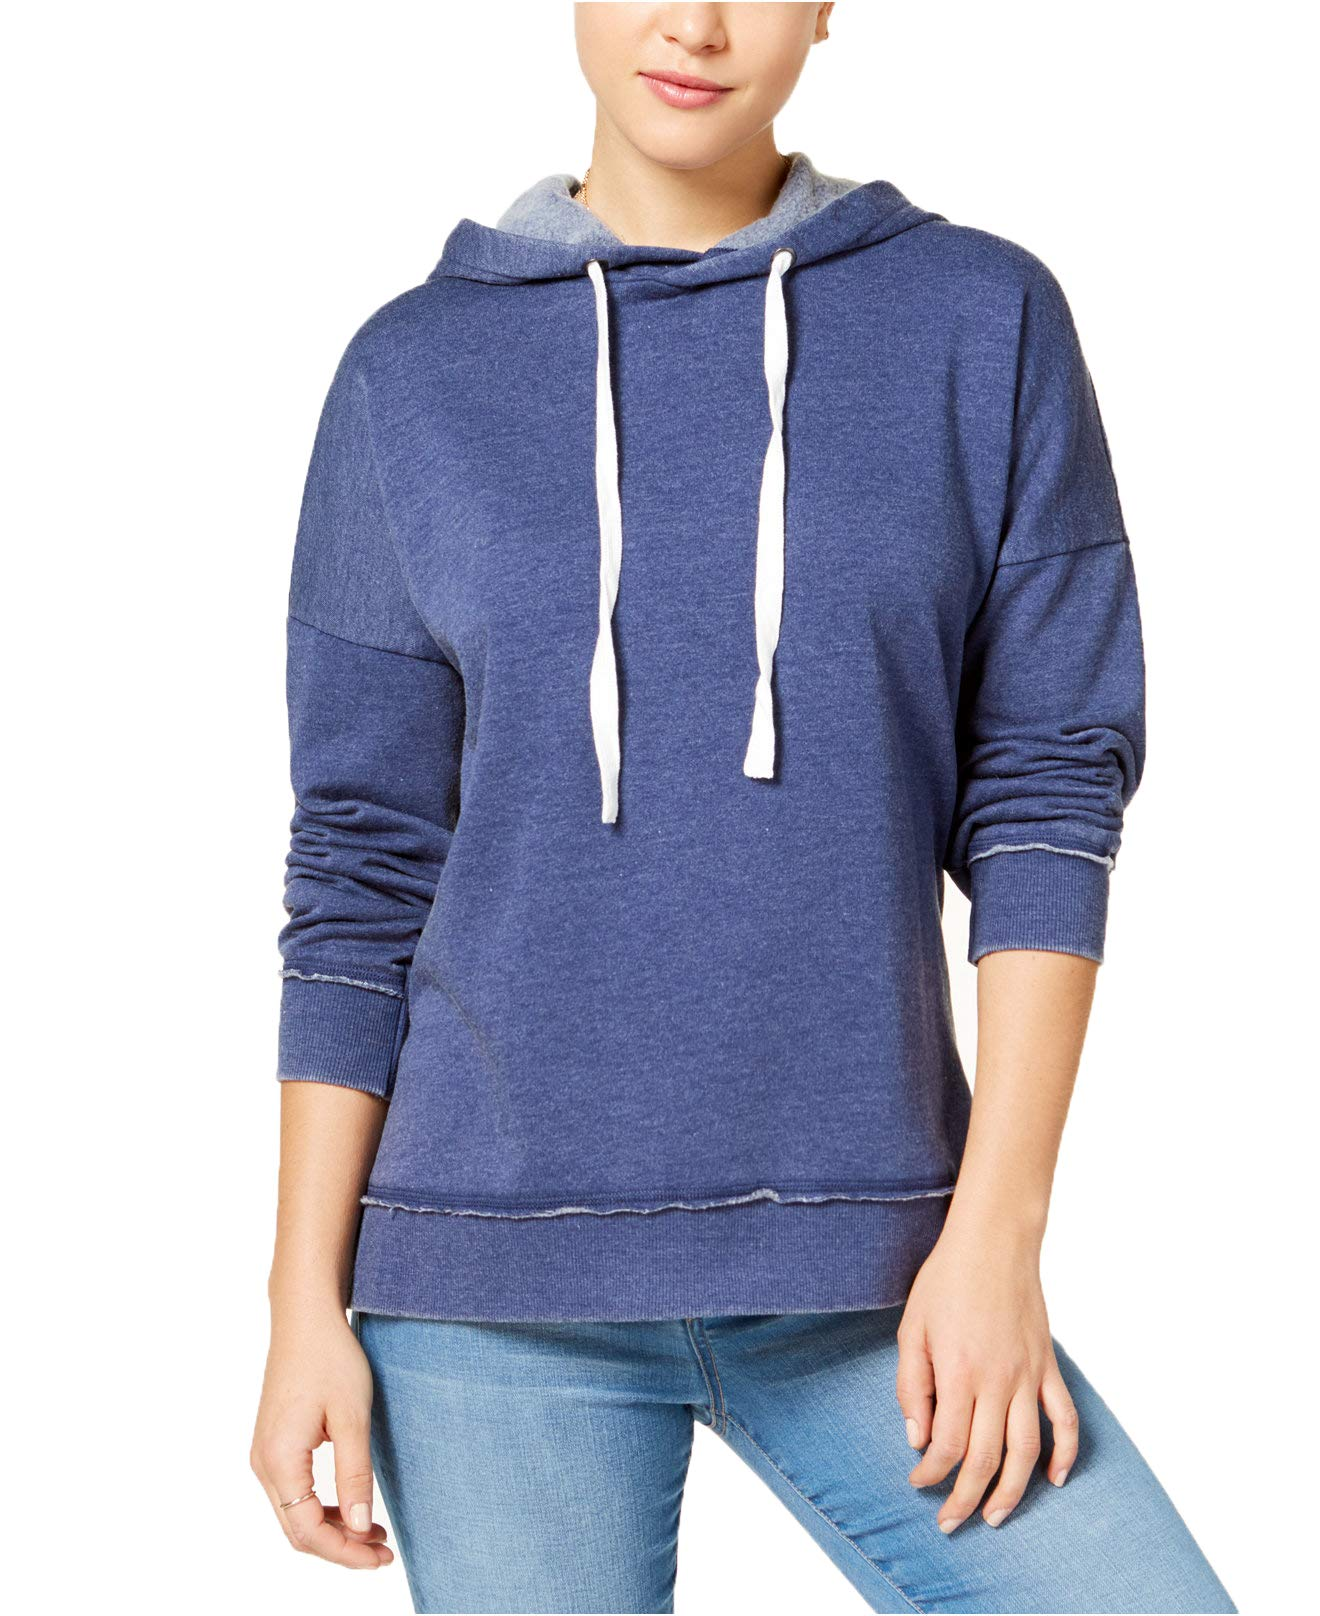 Hippie Rose Juniors' Pullover Hoodie Tunic (Indie Blue, S)